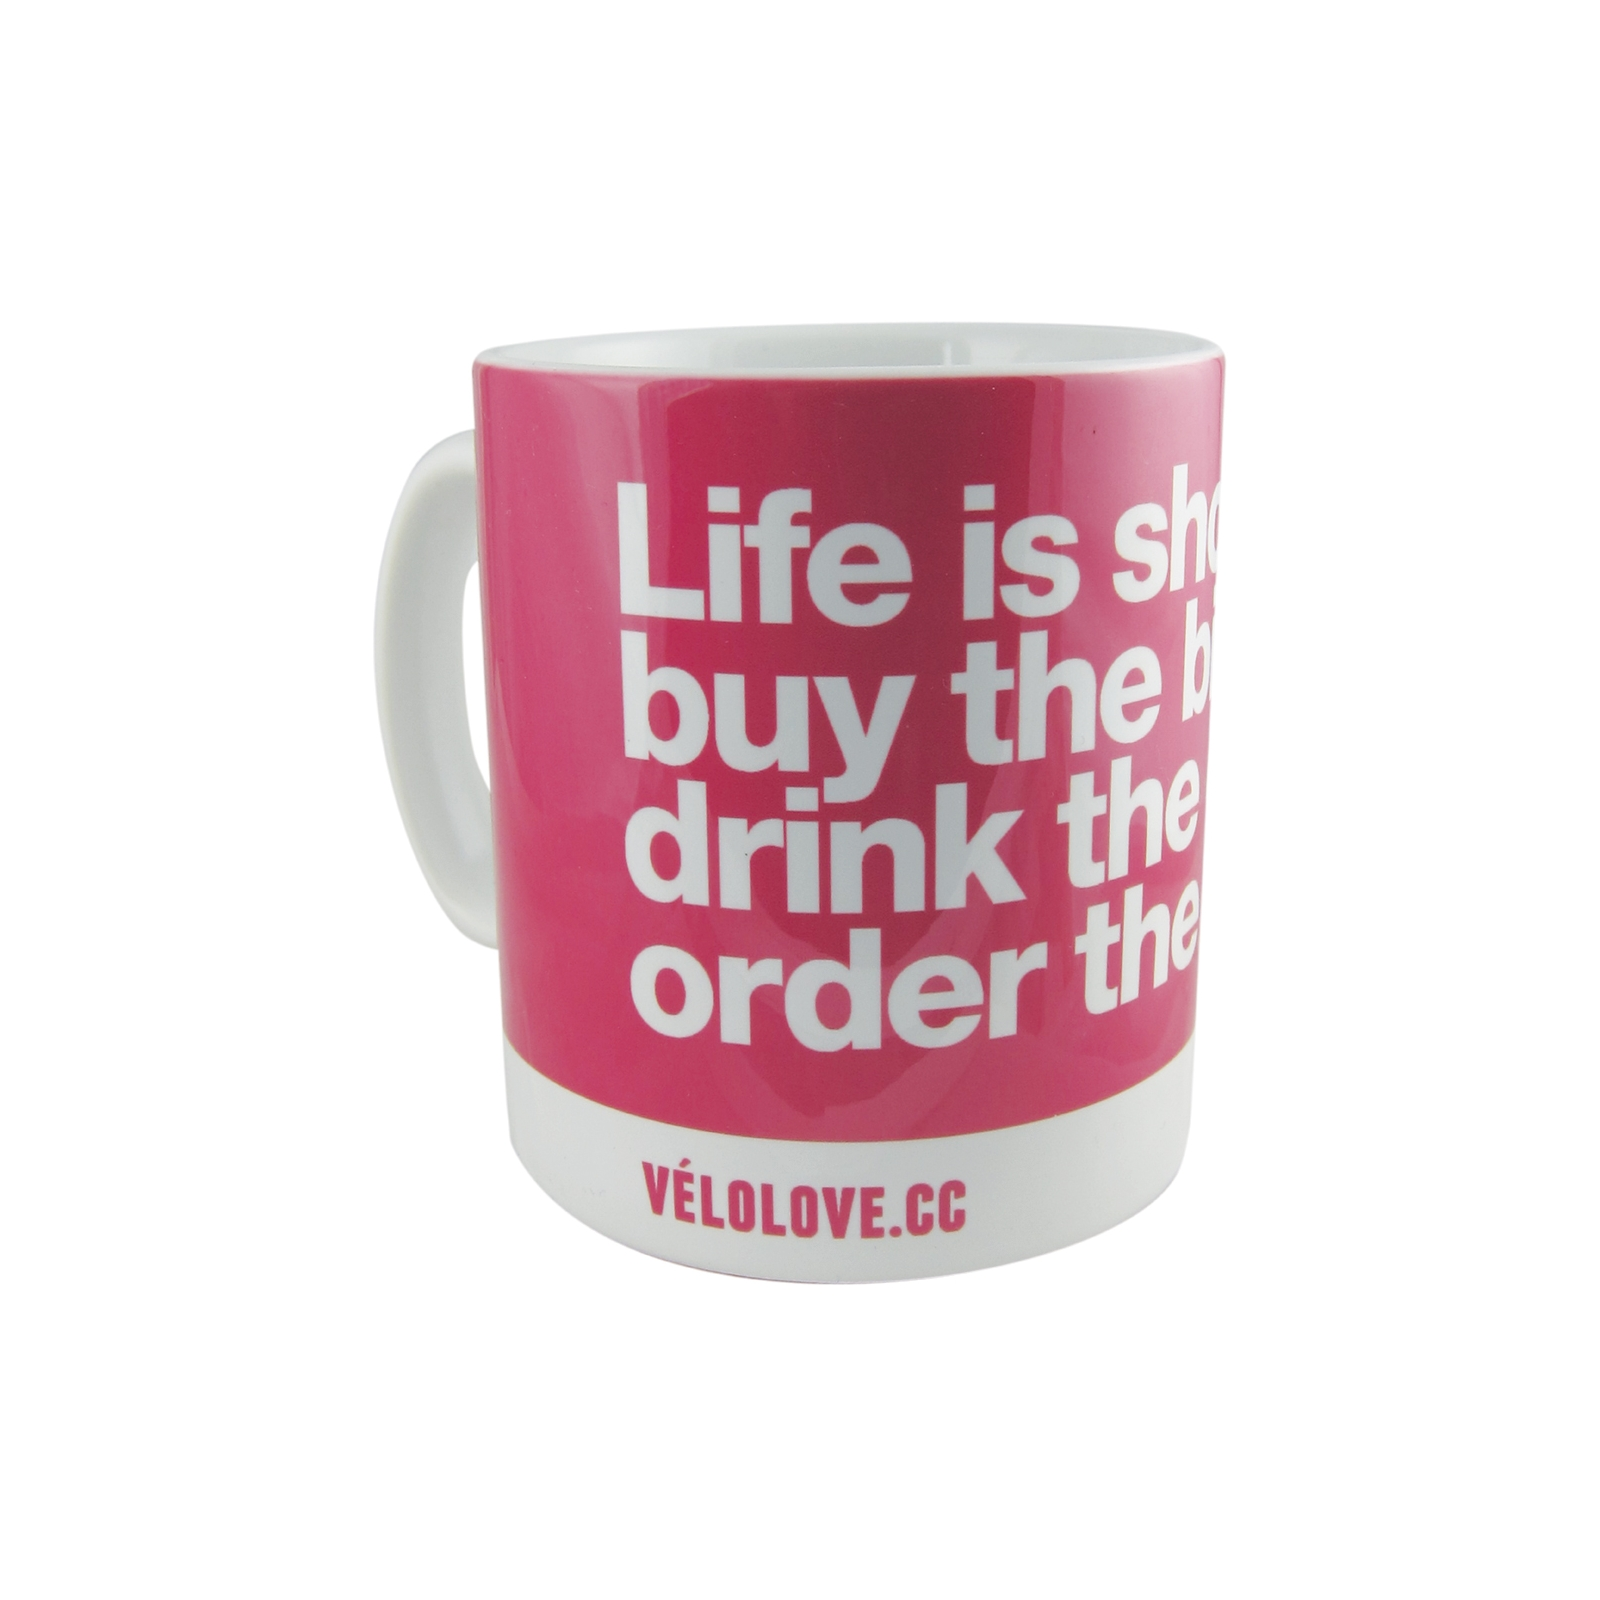 Velolove Life is short, buy the bike, drink the coffee, ord |